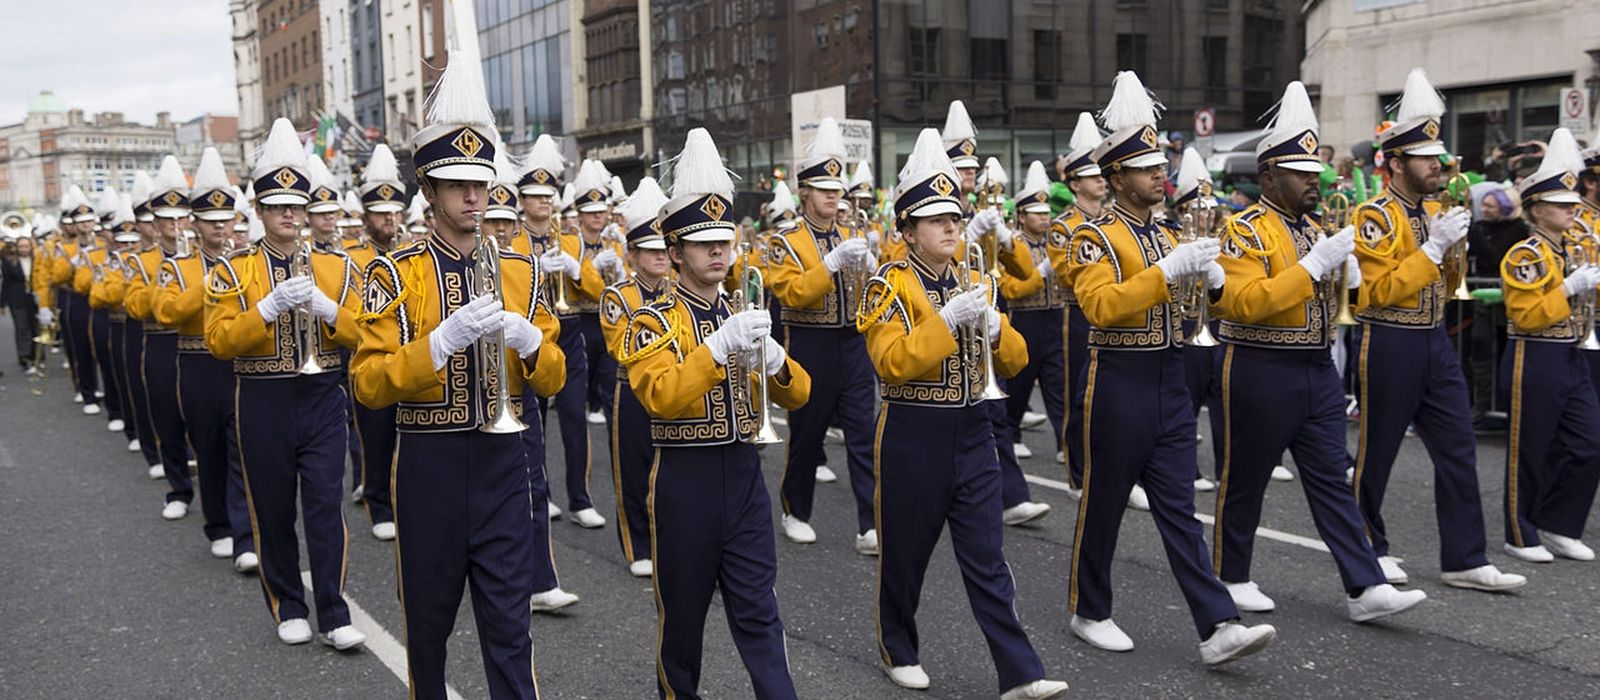 Marching Band tours by Discover Ireland Tours Destination Management Company